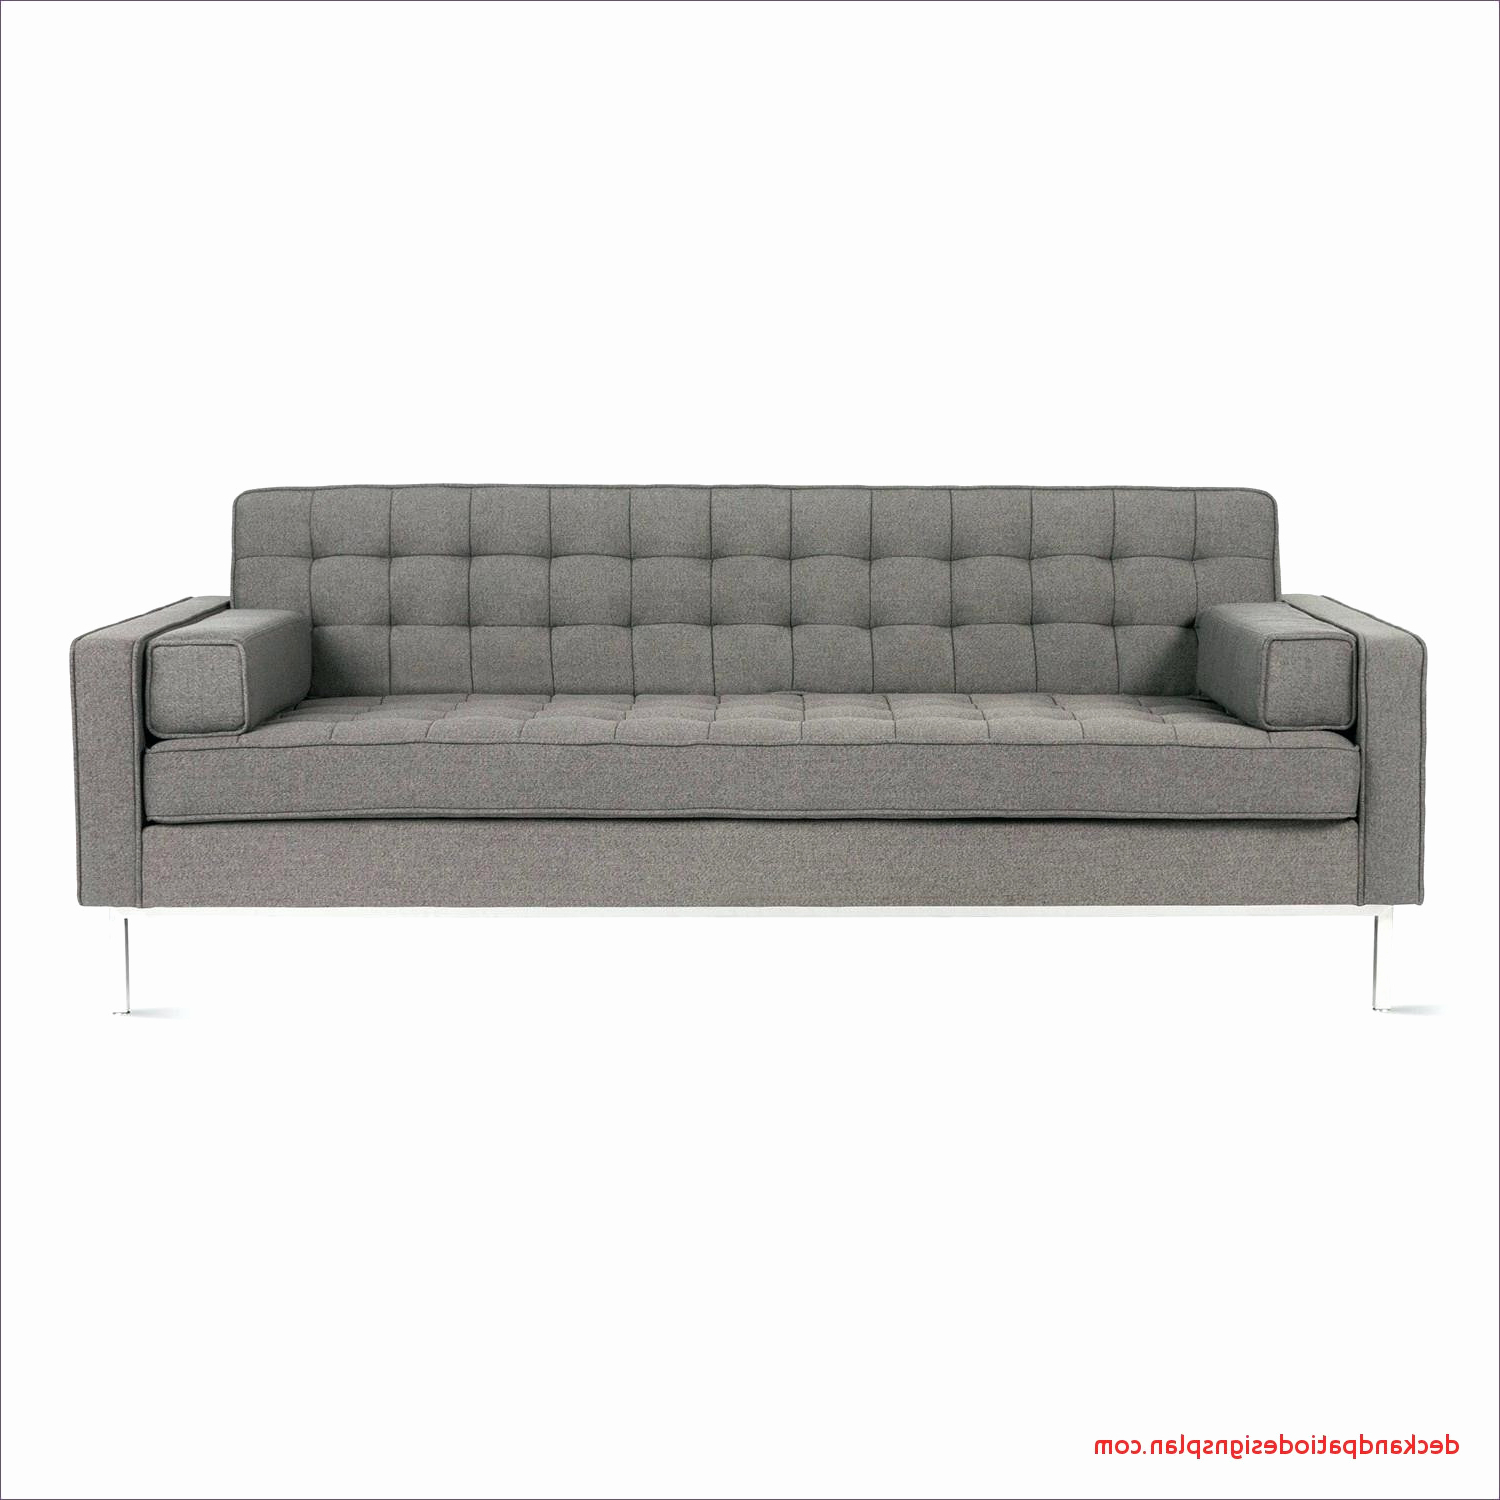 27 Best Of The Smart Sofa Reviews Pictures – Everythingalyce Pertaining To 2019 Egan Ii Cement Sofa Sectionals With Reversible Chaise (Gallery 20 of 20)